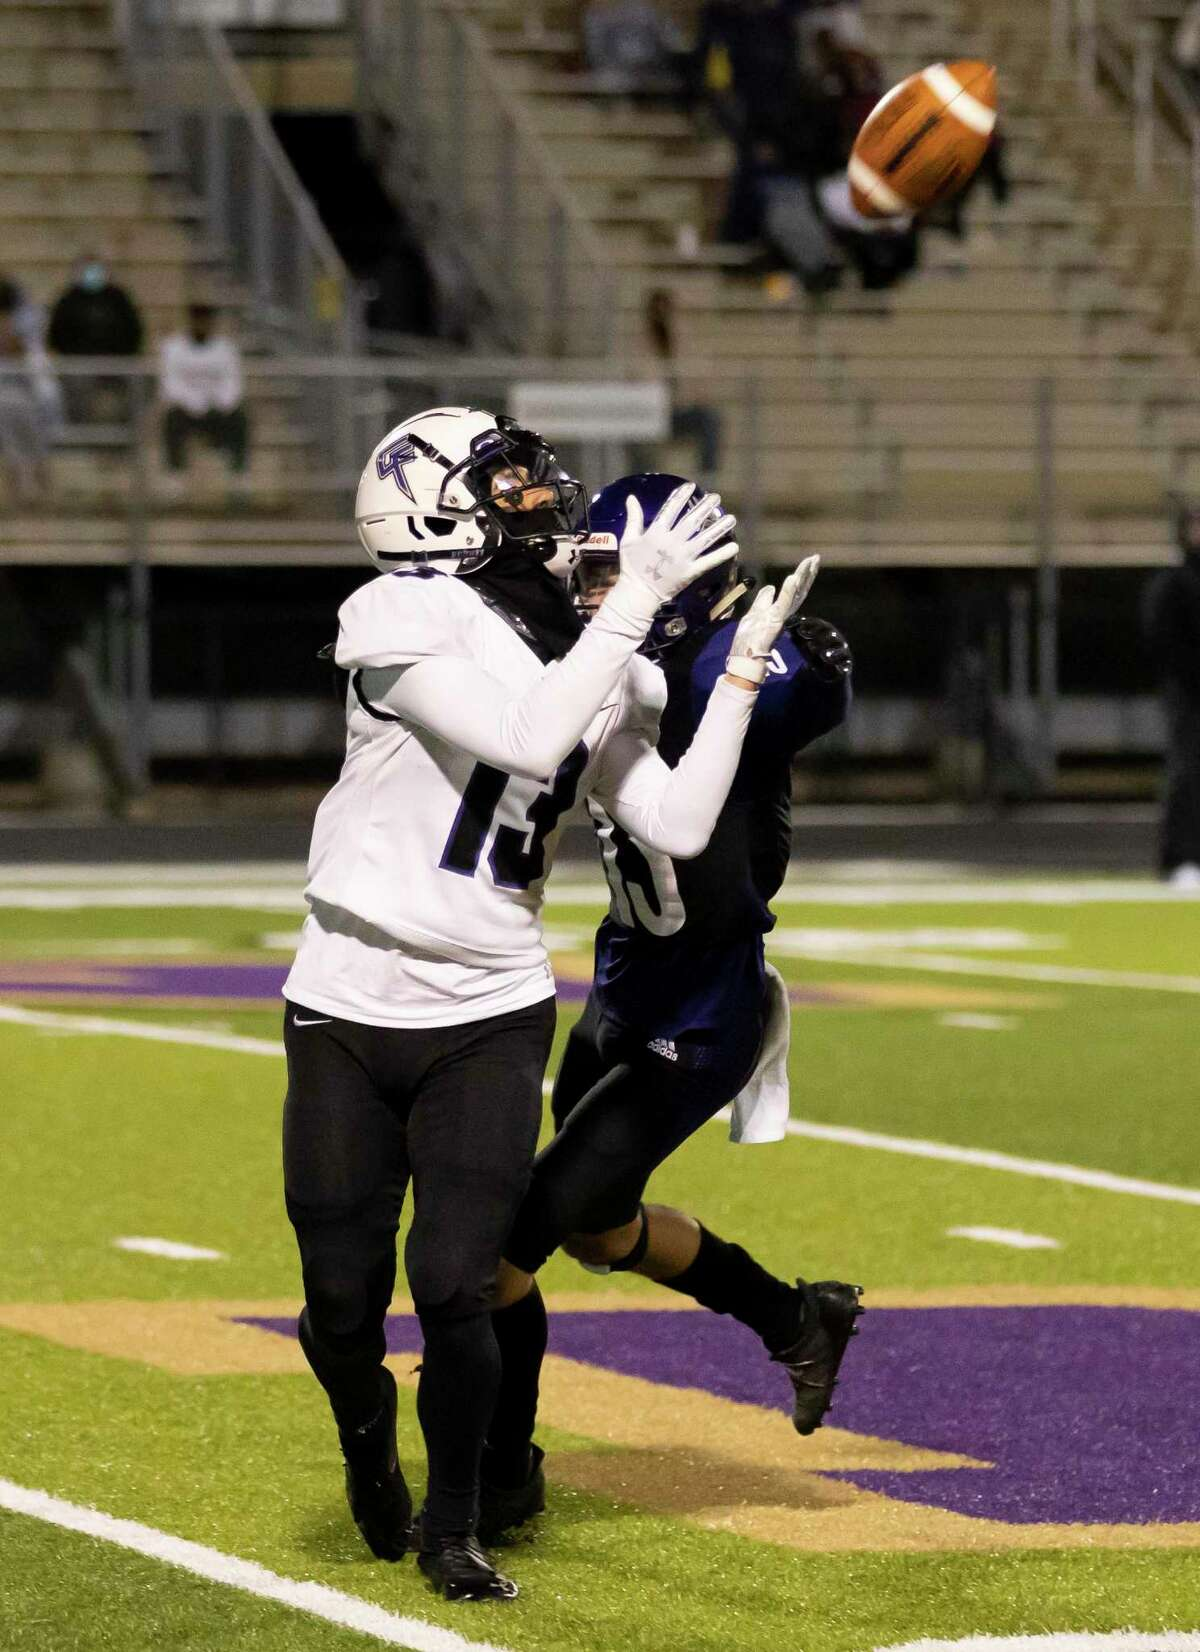 Fulshear wide receiver Jax Medica (13) catches a pass while under pressure from Montgomery center back KJ Danes (13) during the fourth quarter of a District 10-5A (Div. II) football game at MISD Stadium in Montgomery.